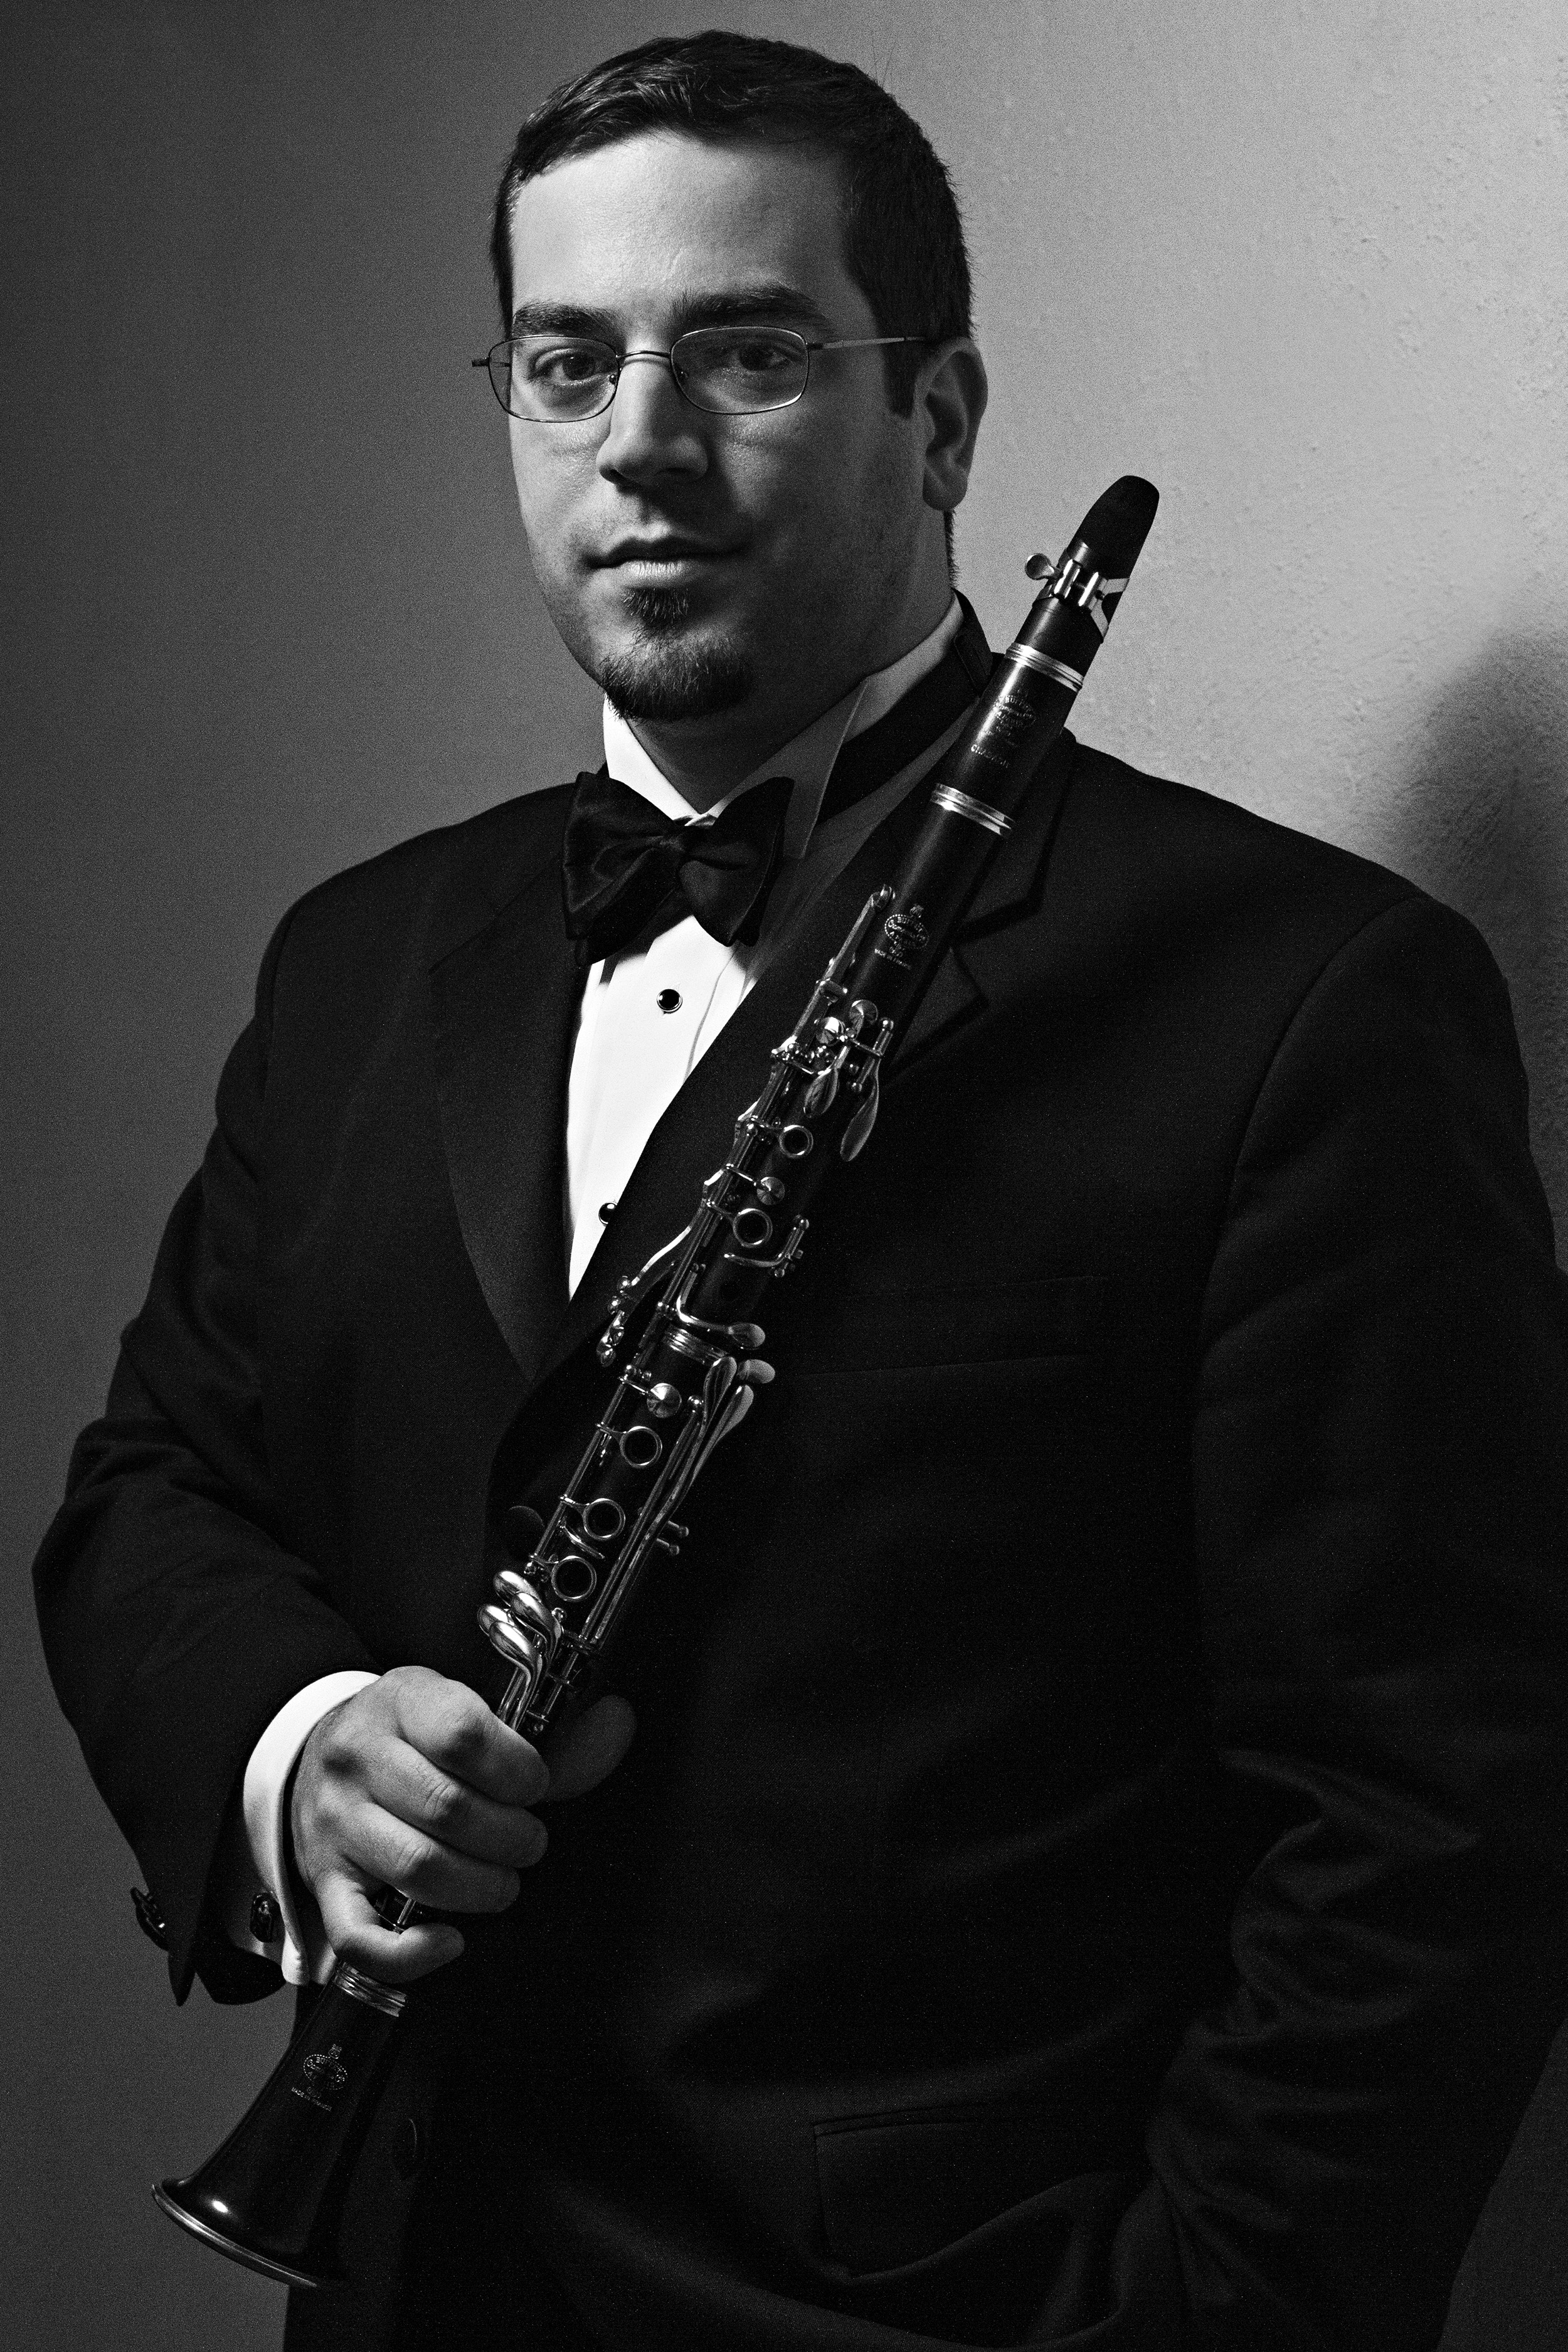 Giuseppe Fusco - Reed 3 - Flute / Clarinet / Soprano Sax / Tenor SaxGiuseppe is a freelance woodwind artist whose instruments are flute, clarinet, and saxophone. He received his Bachelor's degree from Rutgers University in saxophone and music education and his Master's from New Jersey City University in multiple woodwind performance. Giuseppe is founder and artistic director of Chamber Music Society of North Jersey, which is about to begin its fourth season of programming. He has played in numerous Broadway and freelance symphonic orchestras, and is on adjunct faculty at New Jersey City University.www.giuseppe-fusco.com